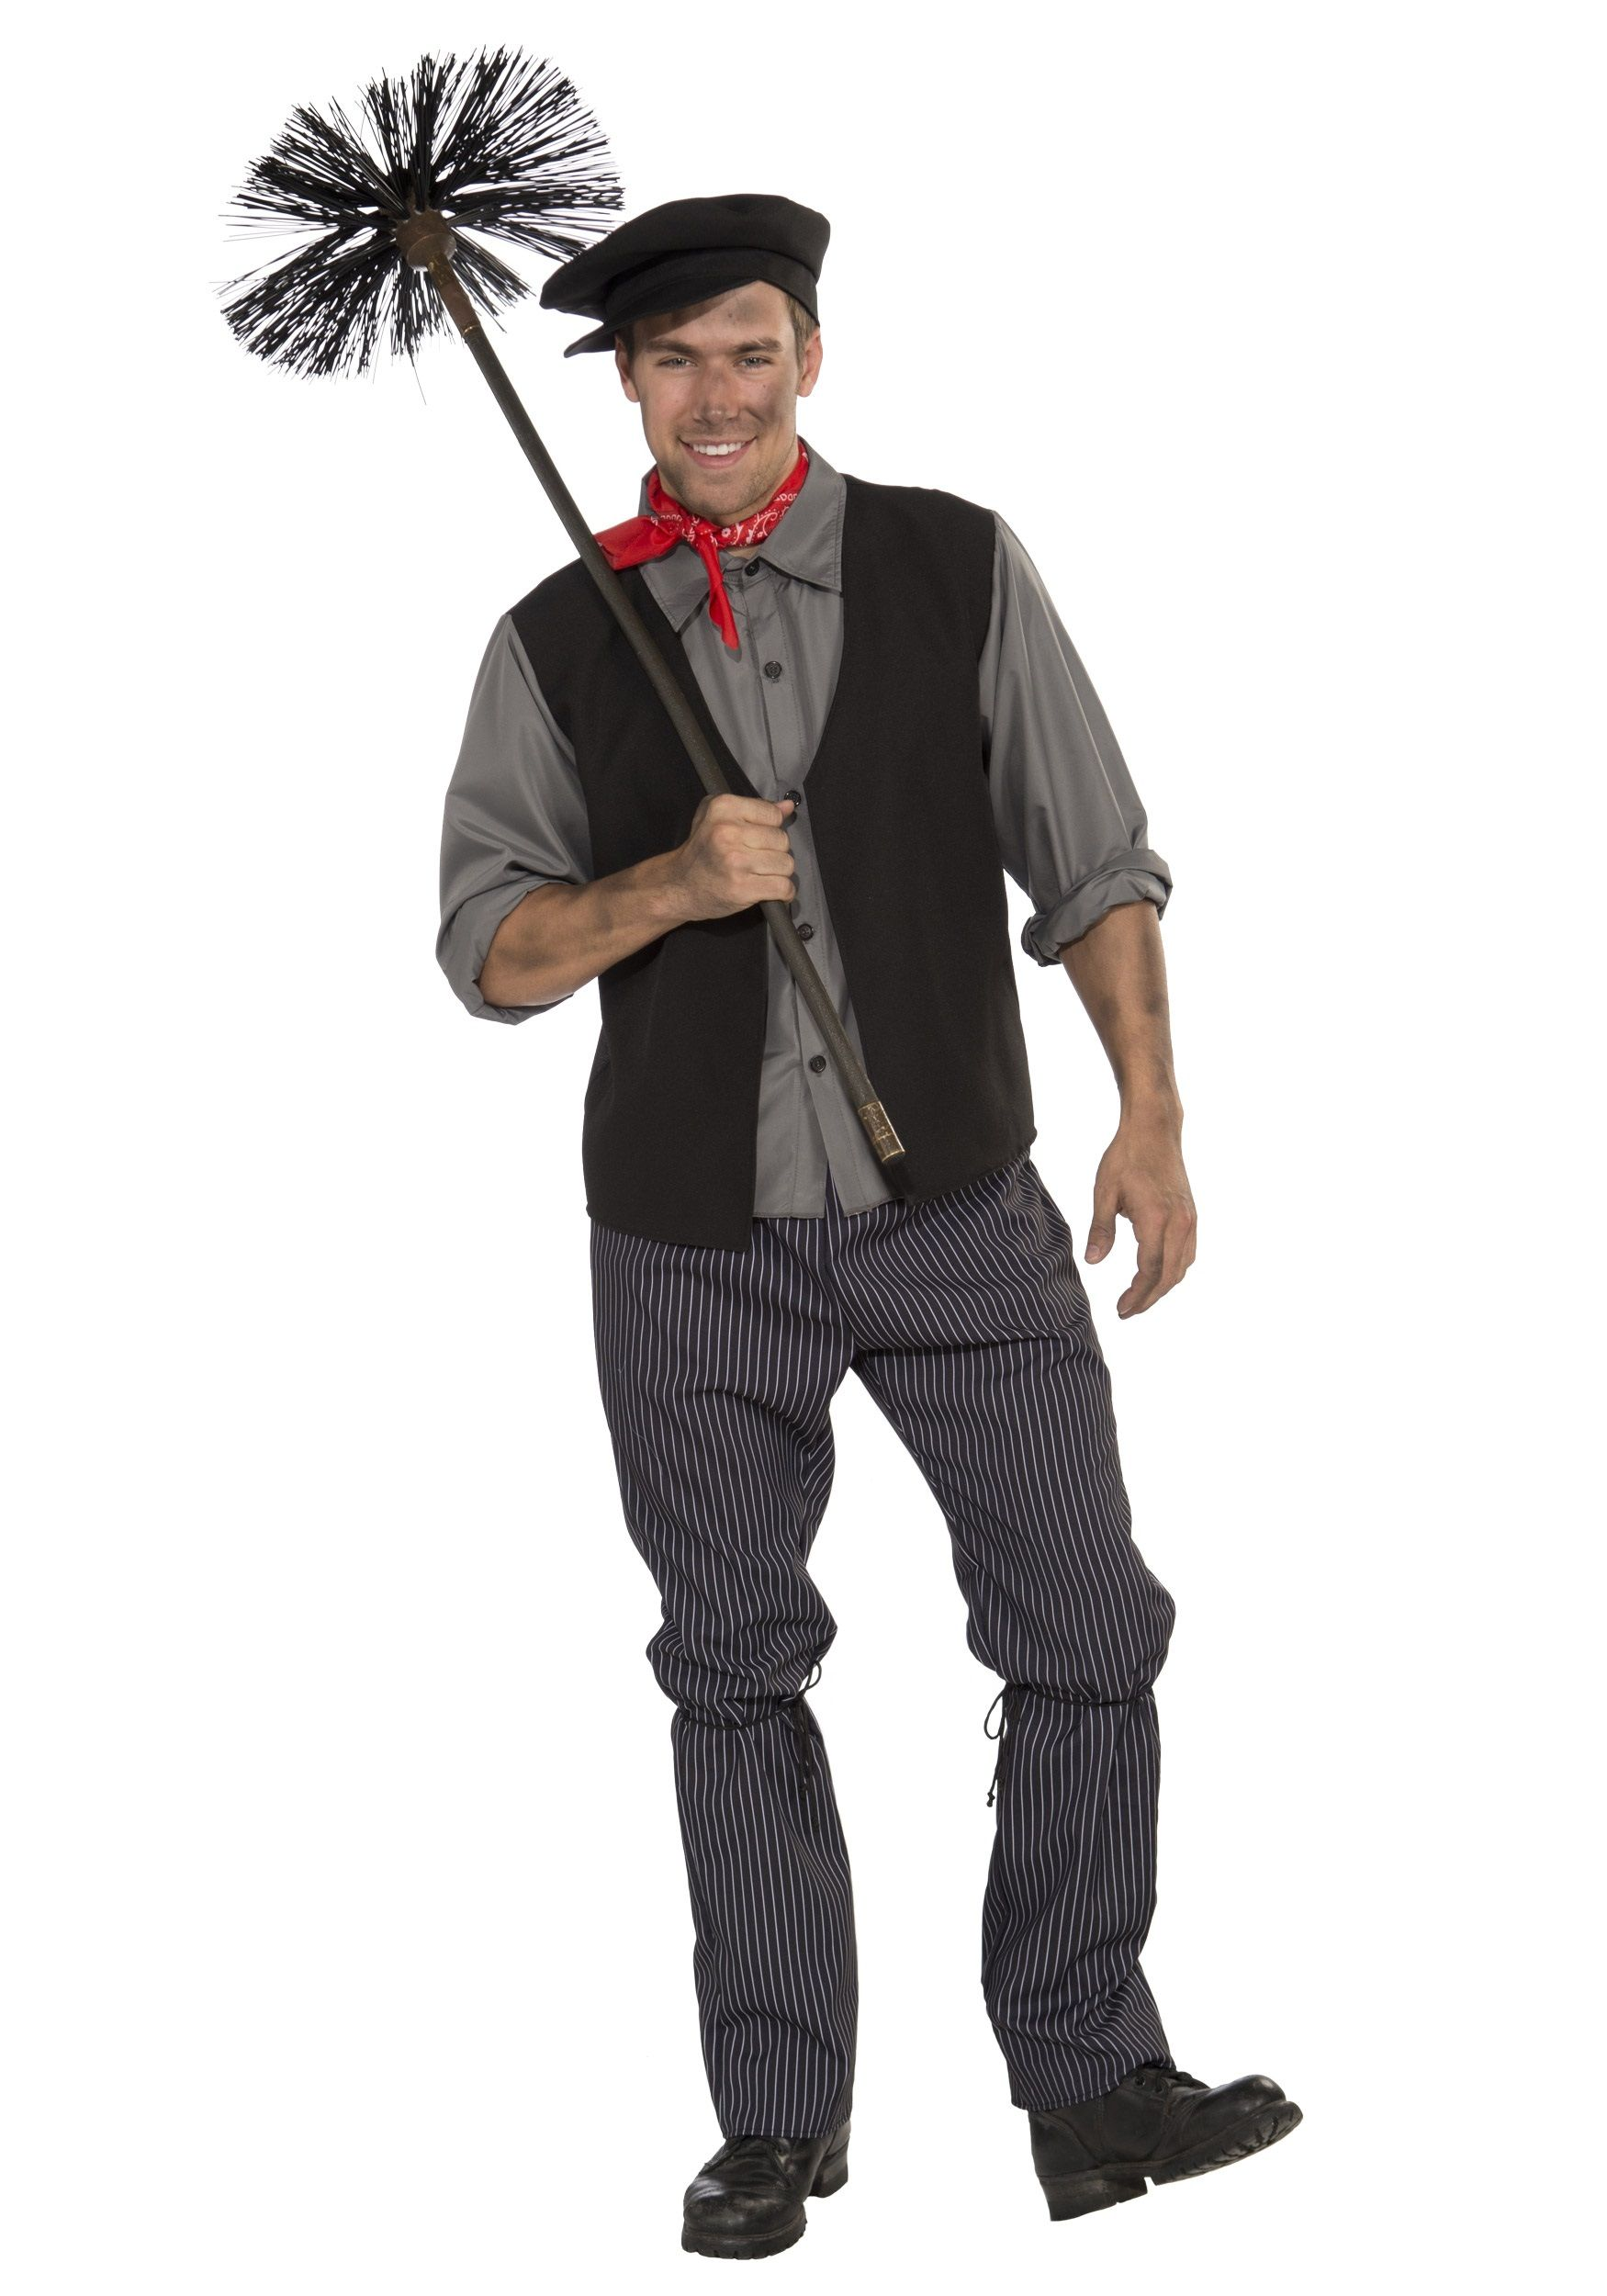 Chimney Cleaners Omro  1000+ images about pictures of chimney sweeps on Pinterest  Chimney sweep, Chimney sweep costume and Pipe cleaners